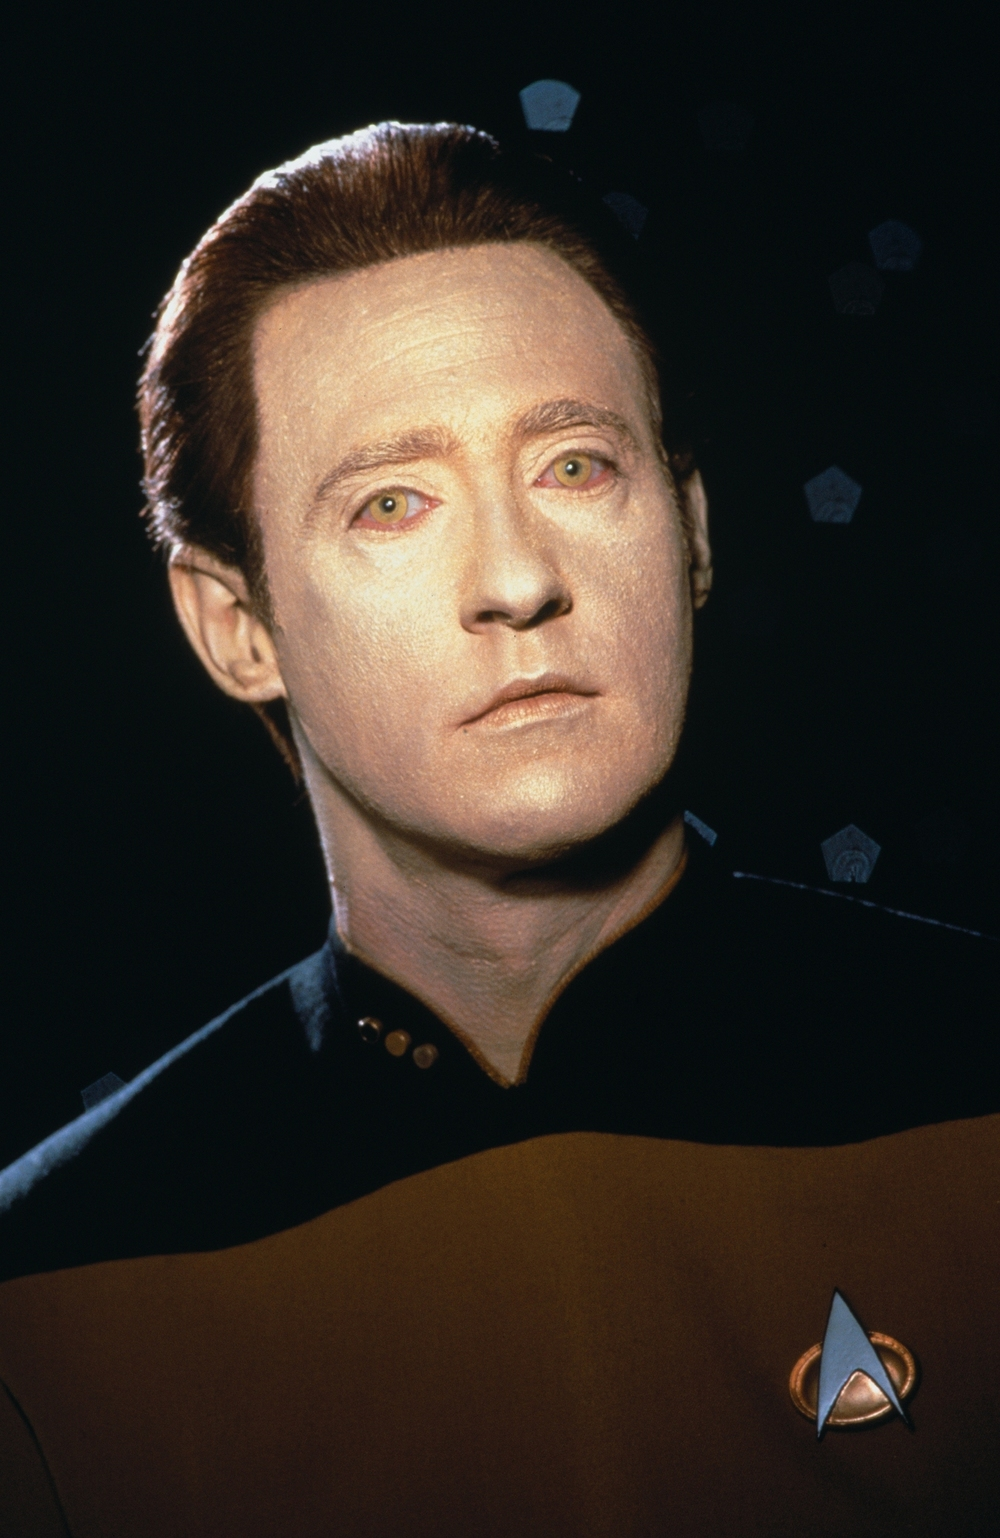 3143248-lt-commander-data-star-trek-the-next-generation-9406567-1664-2560.jpg